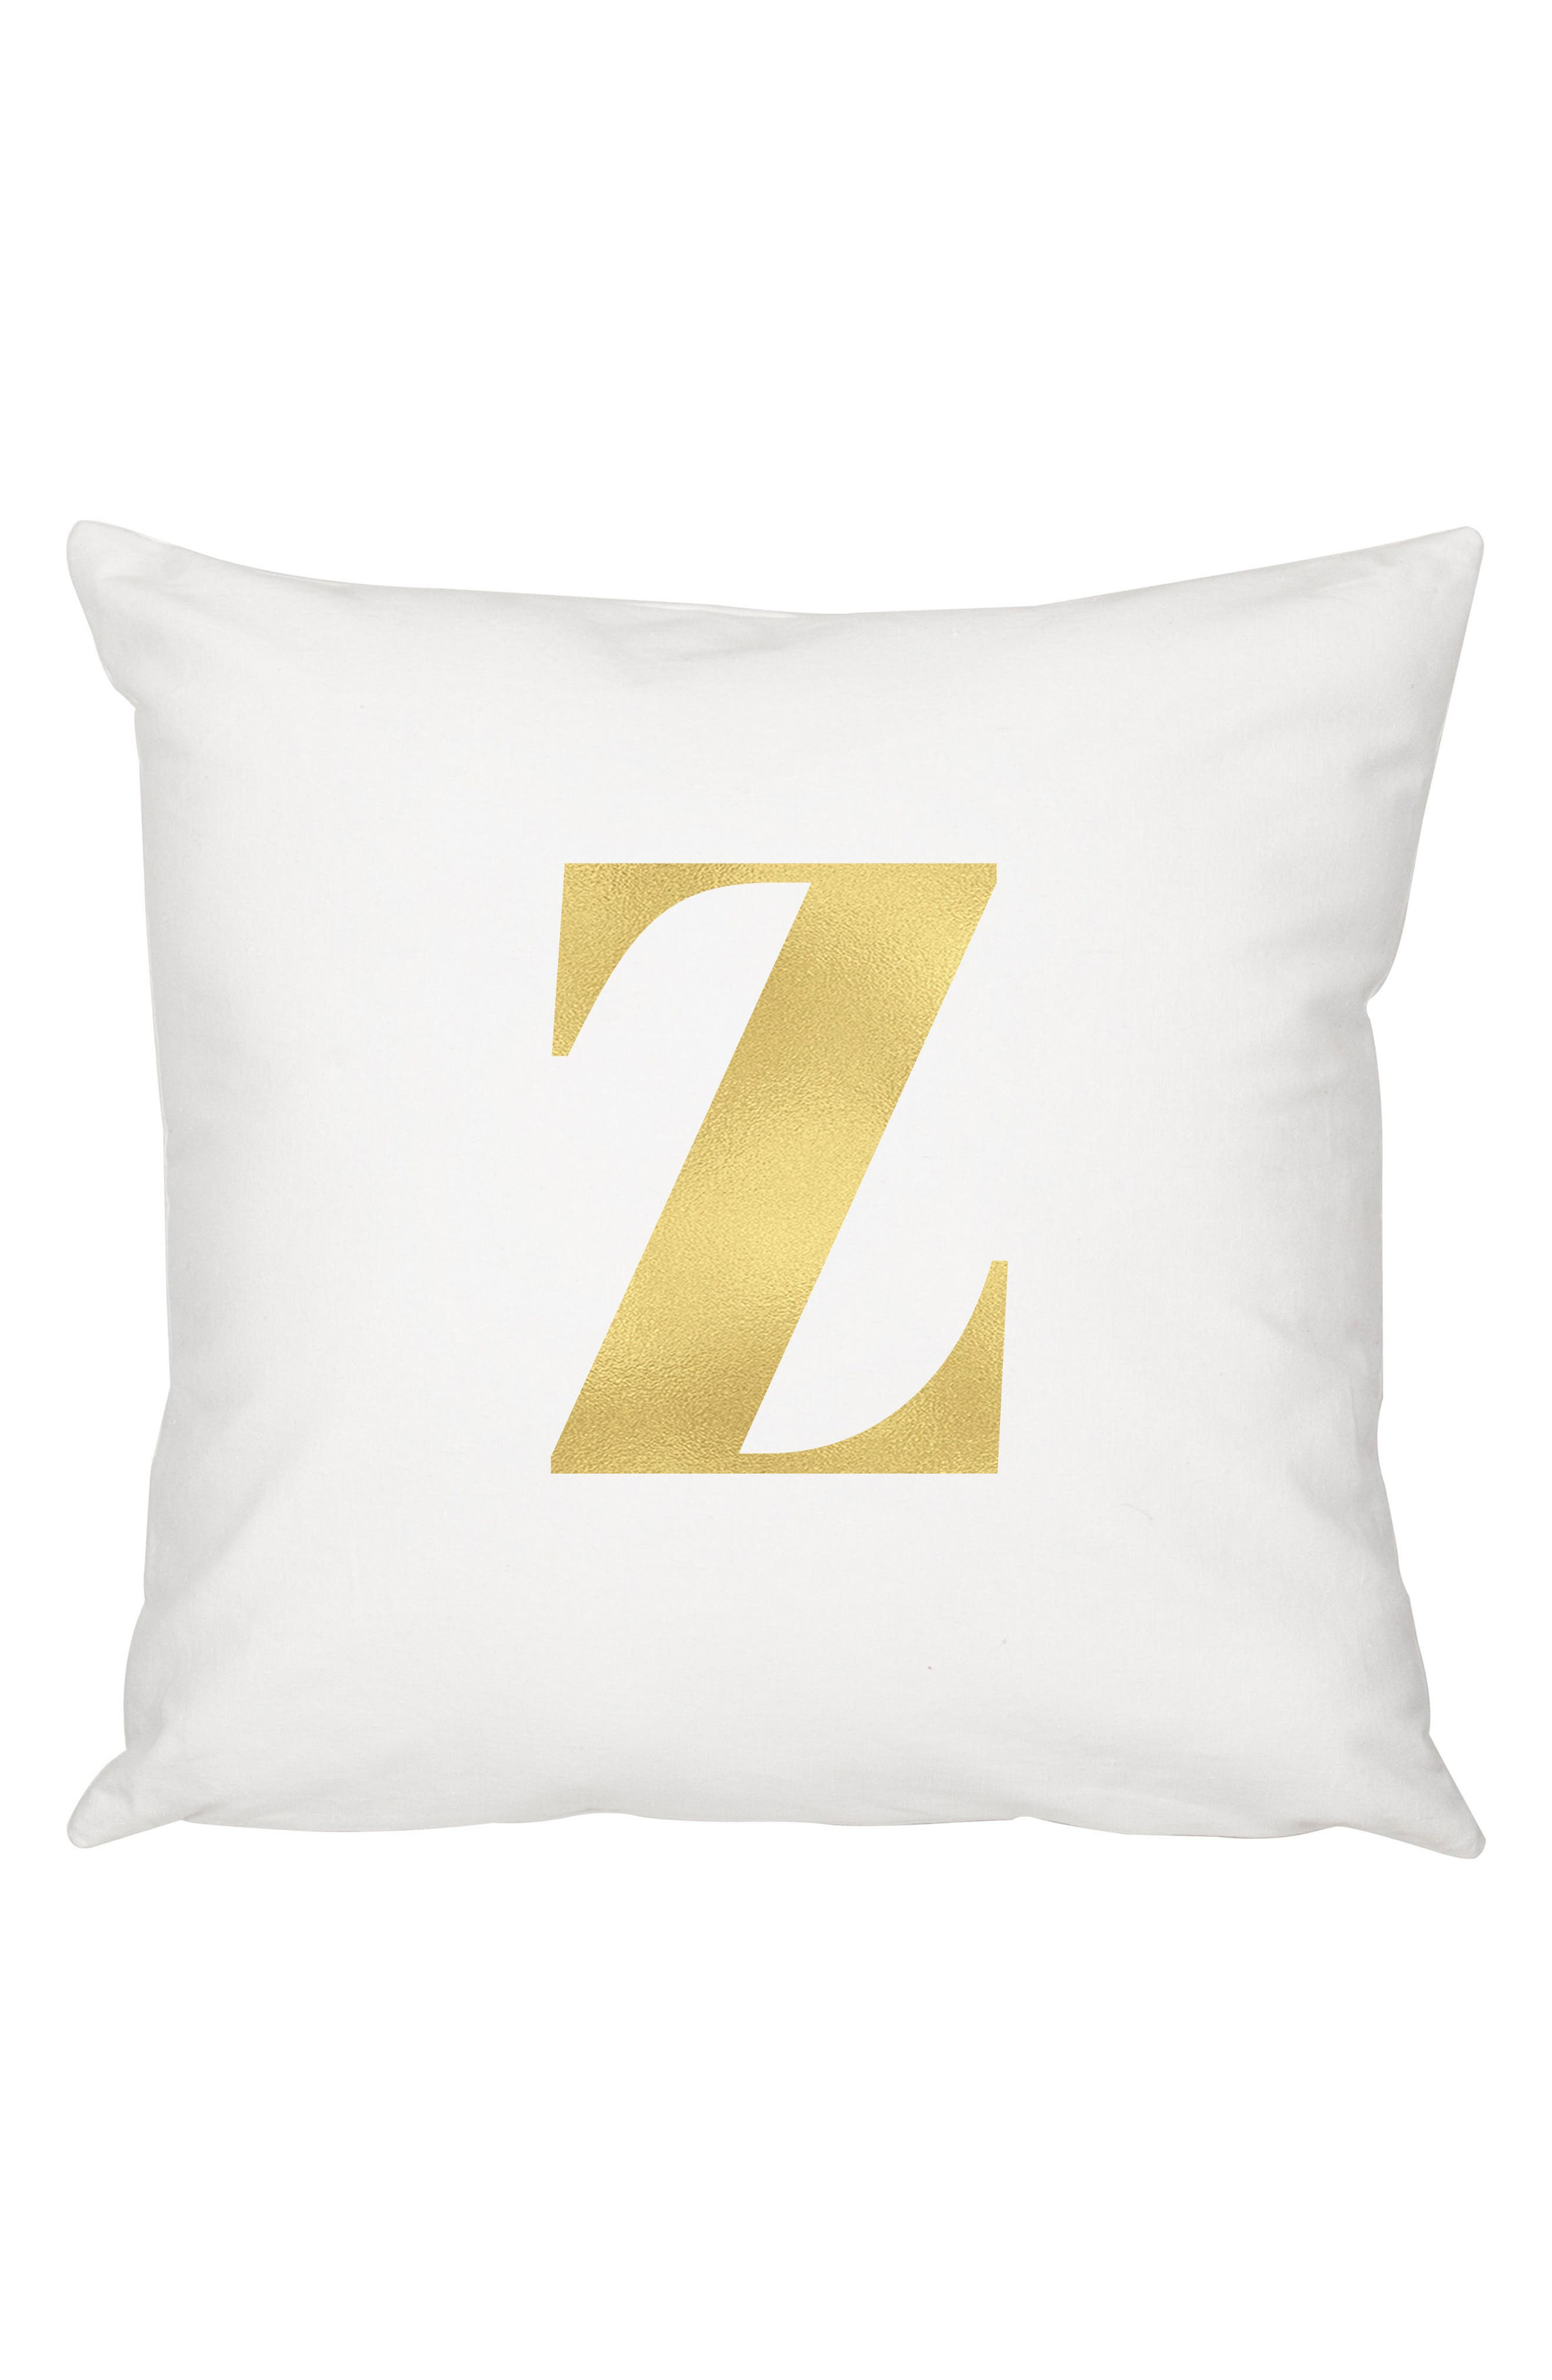 Main Image - Cathy's Concepts Monogram Accent Pillow